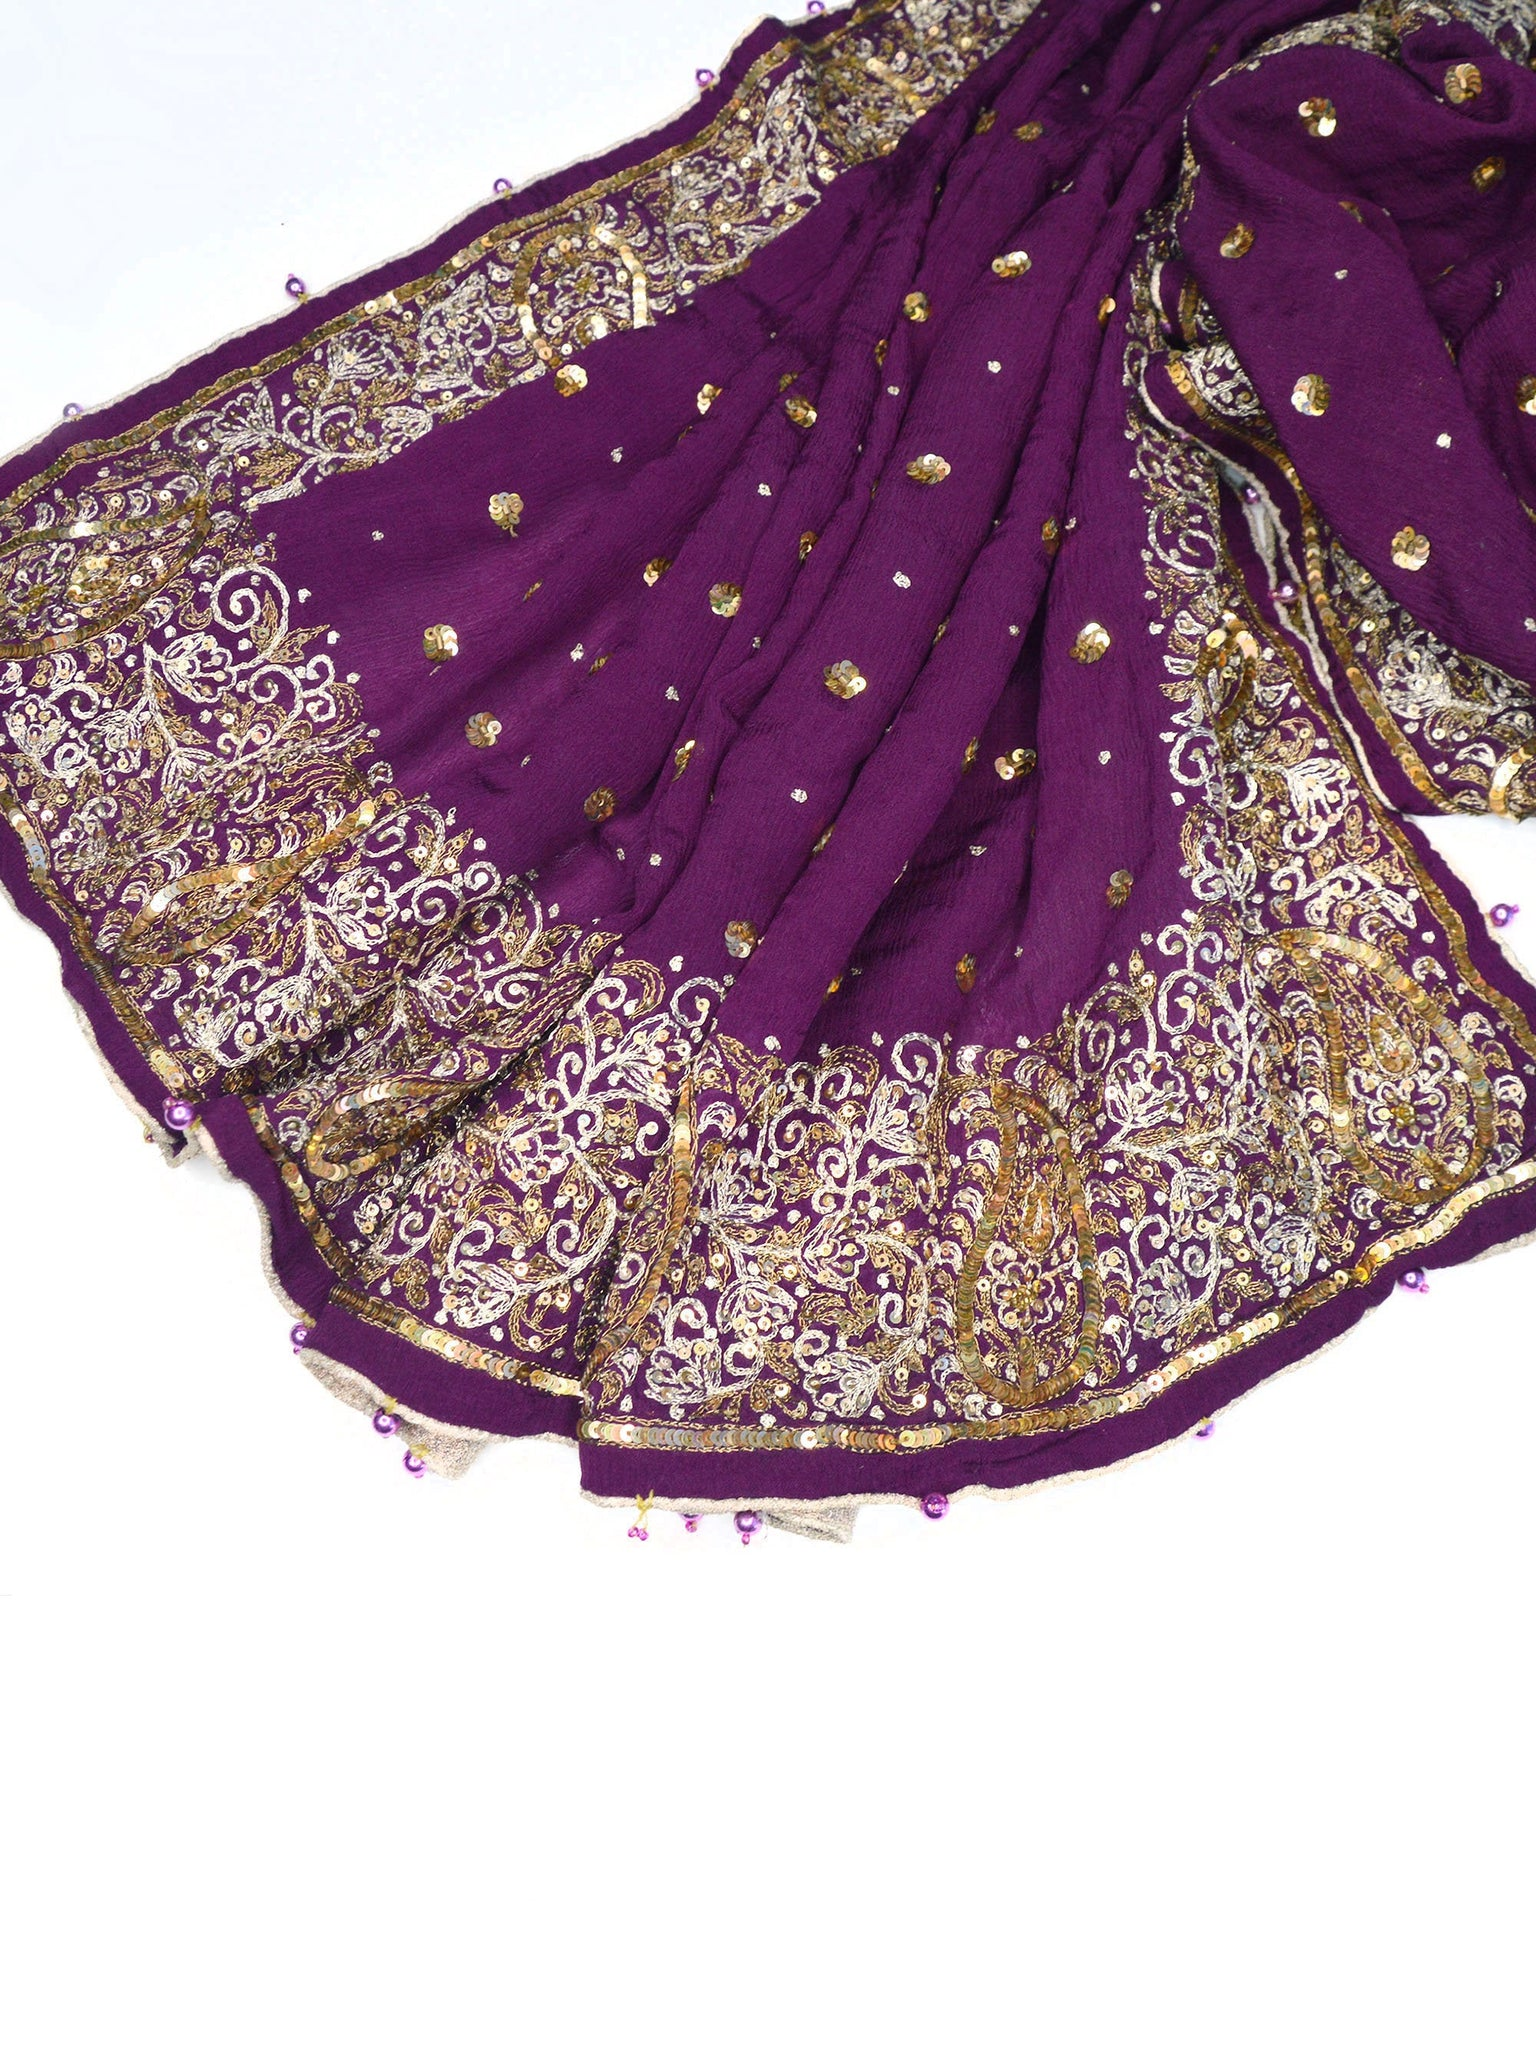 Purple embroidered wedding shawl.